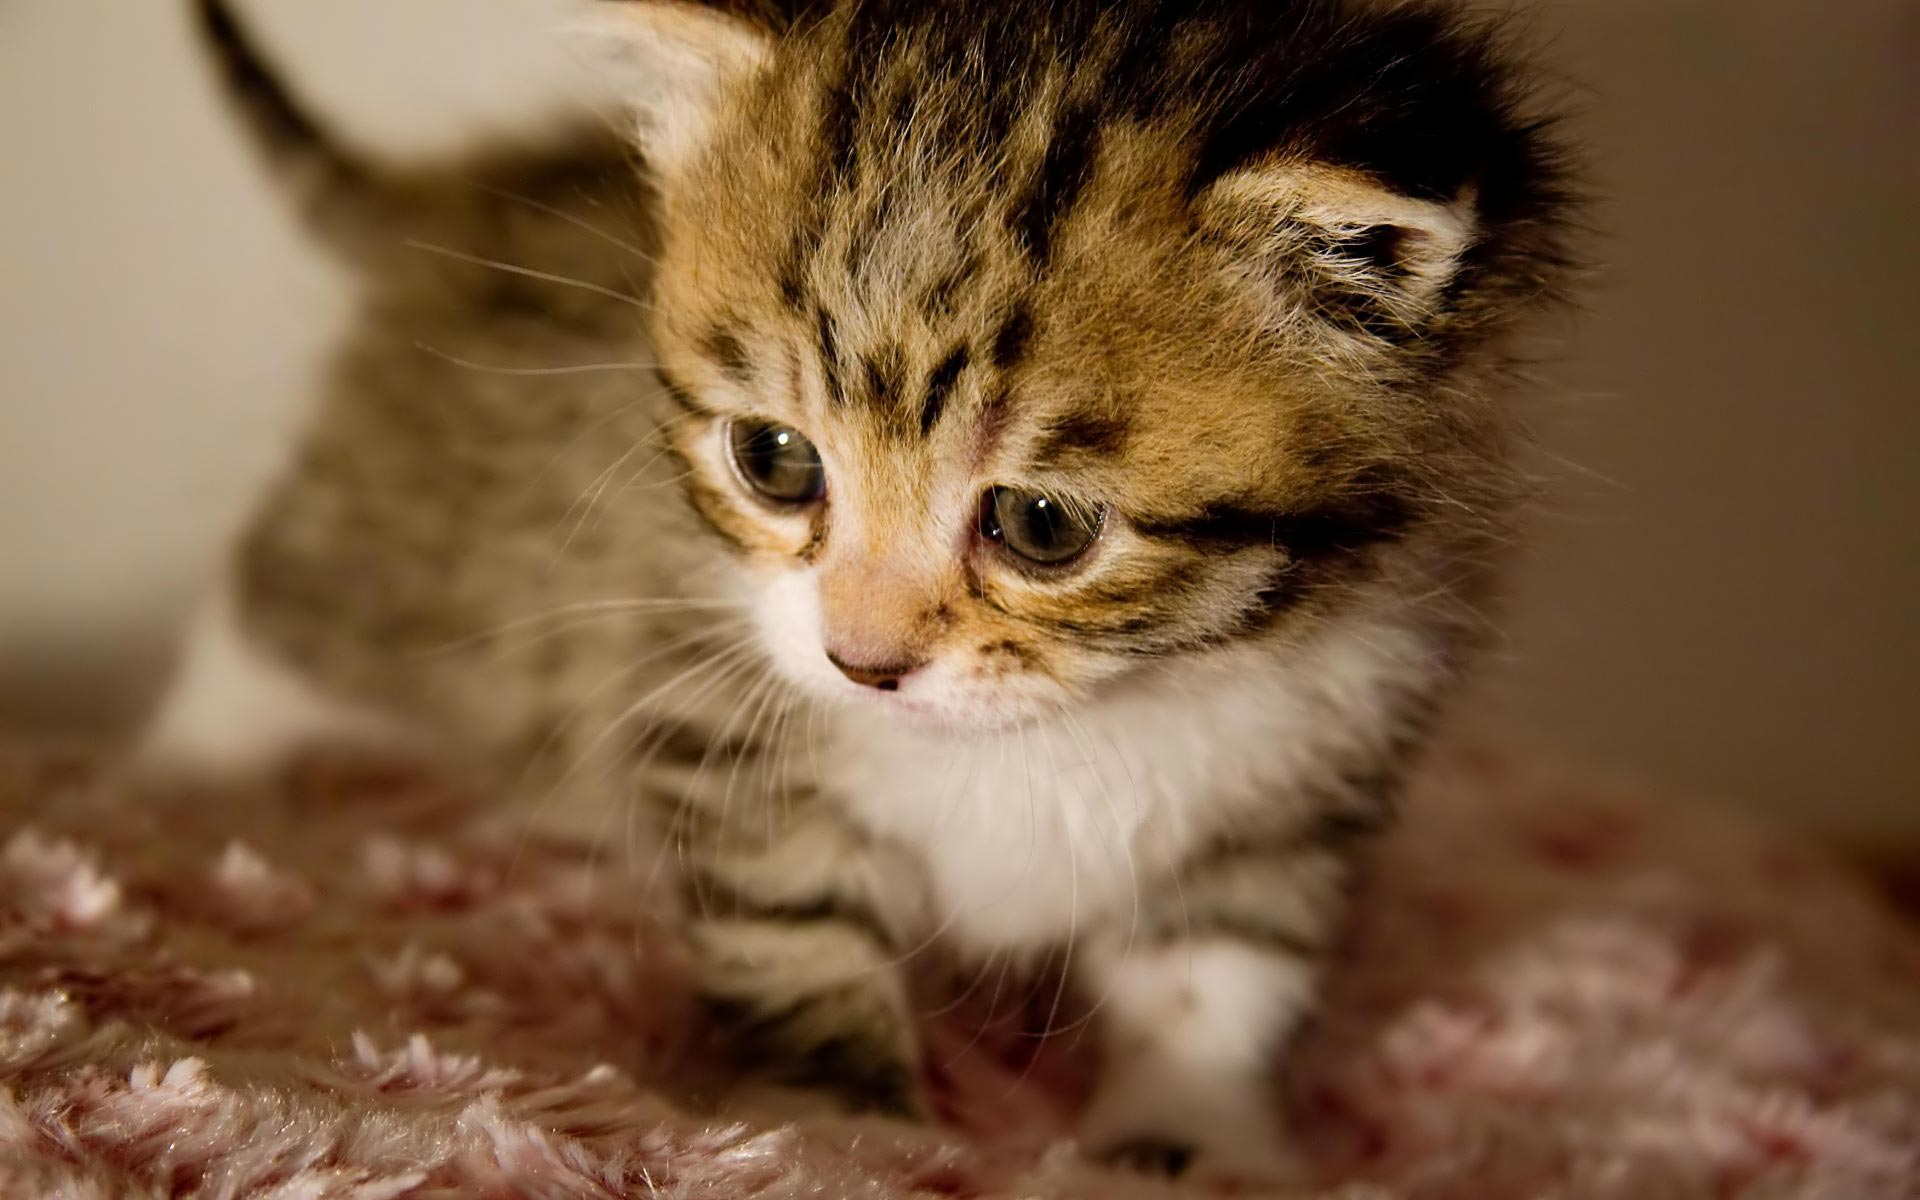 Desktop Wallpaper · Gallery · Animals · Cute baby kitten